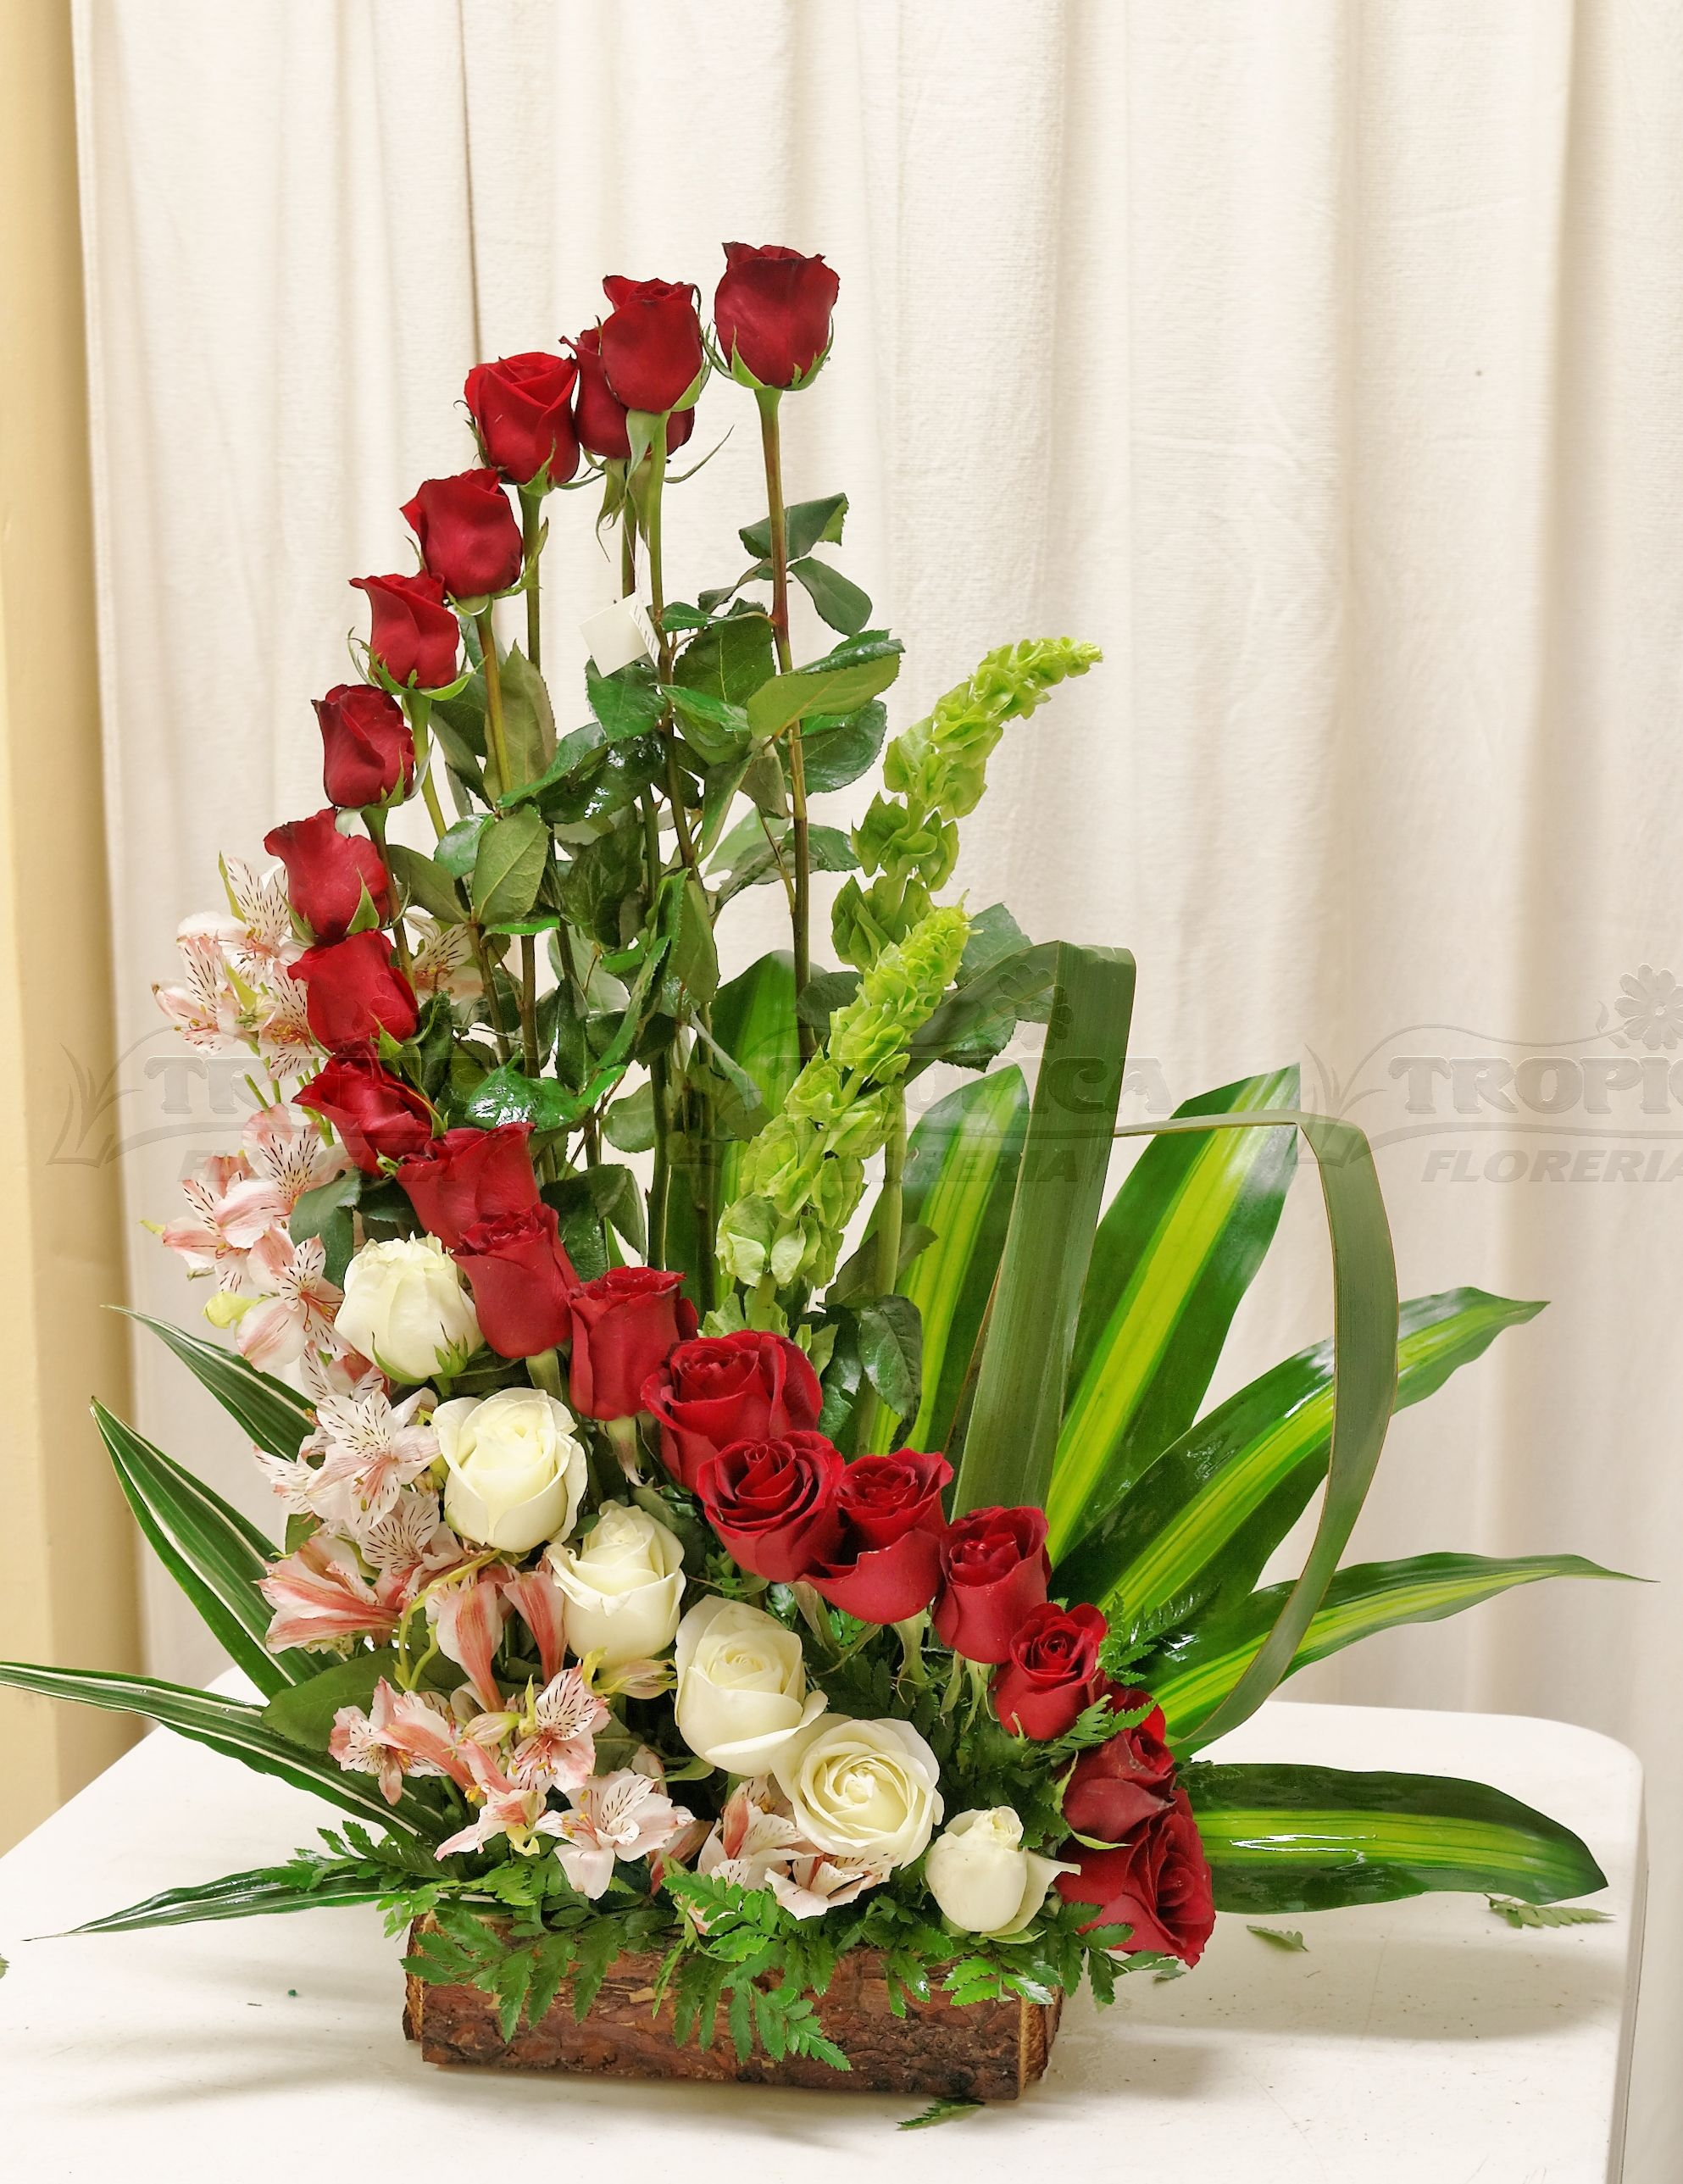 Arreglo De Rosas En Escalera Tropica Floreria Church Flower Arrangements Fresh Flowers Arrangements Flower Arrangements Diy